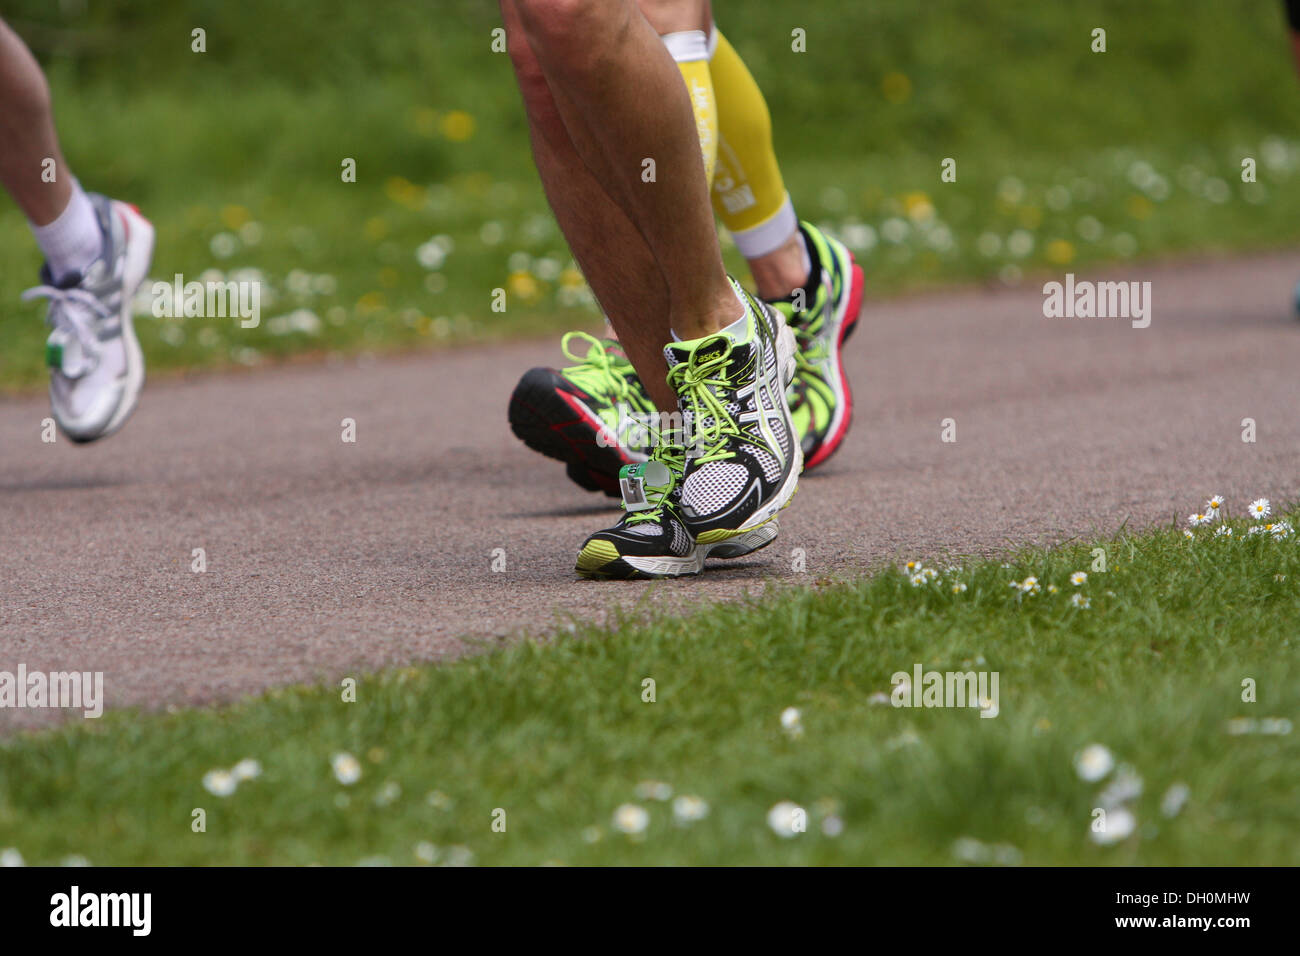 Three 3 marathon runners feet in motion - Stock Image